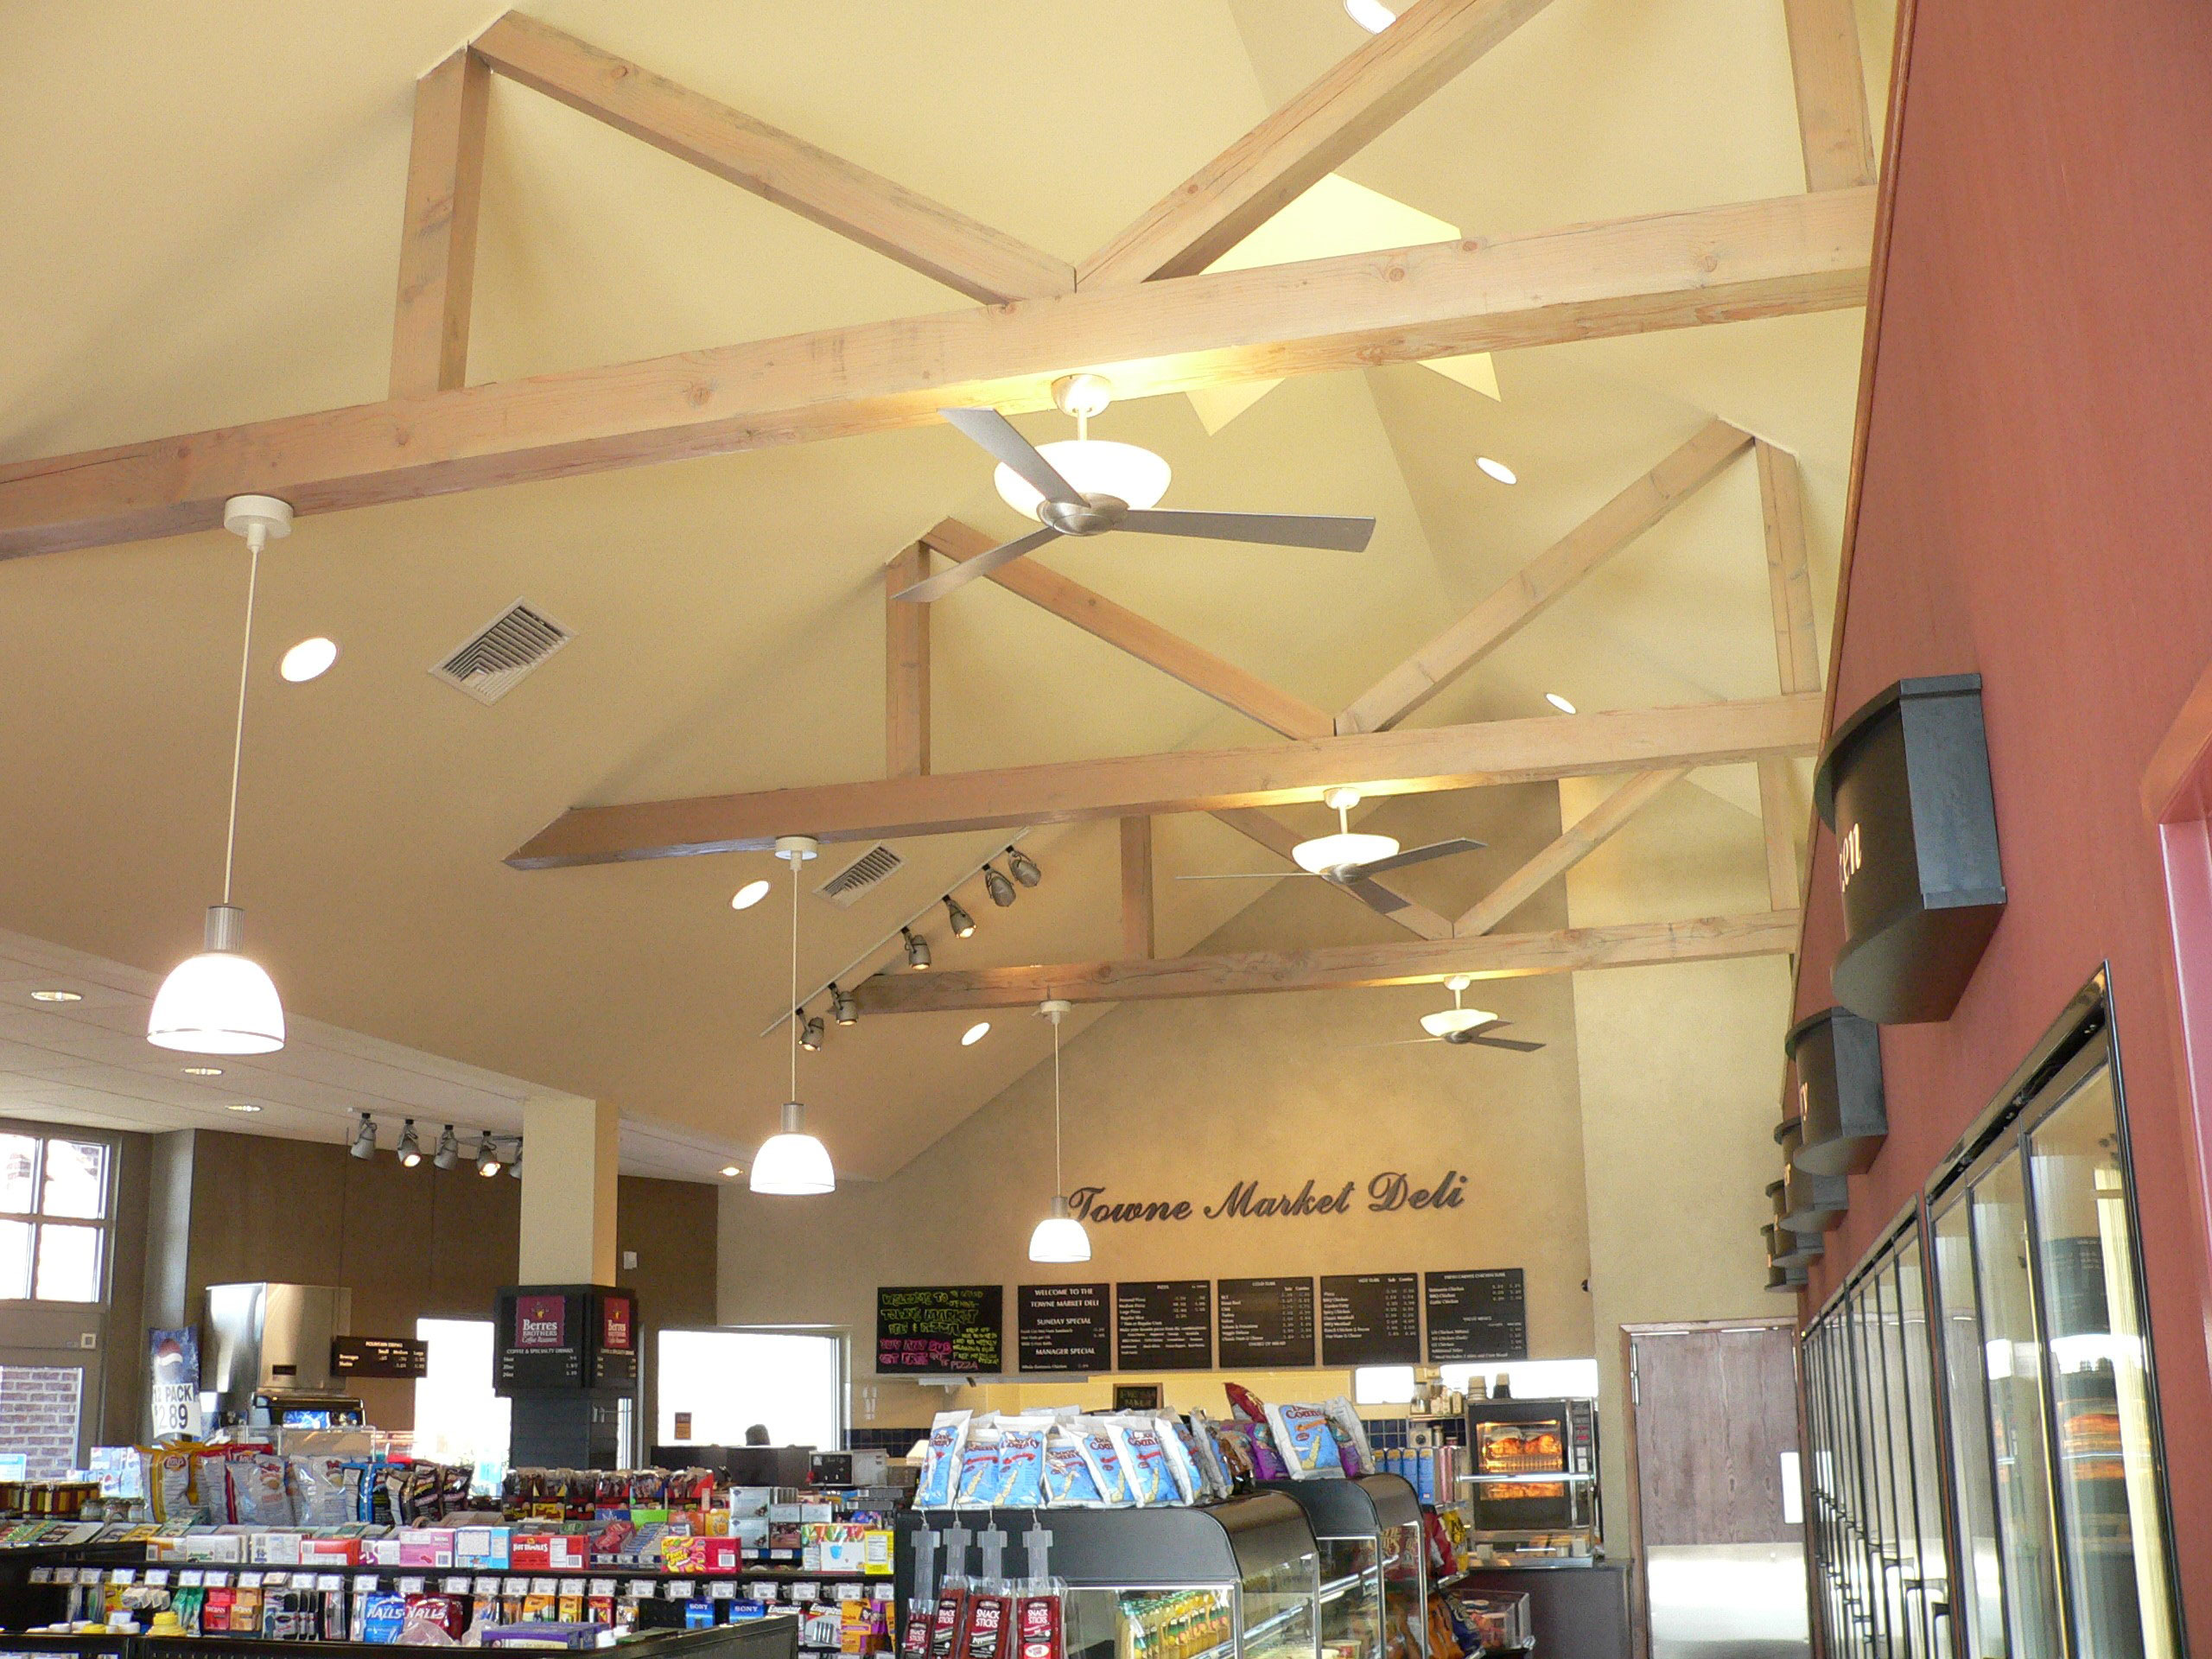 Towne Market Mobil ceiling trusses north view